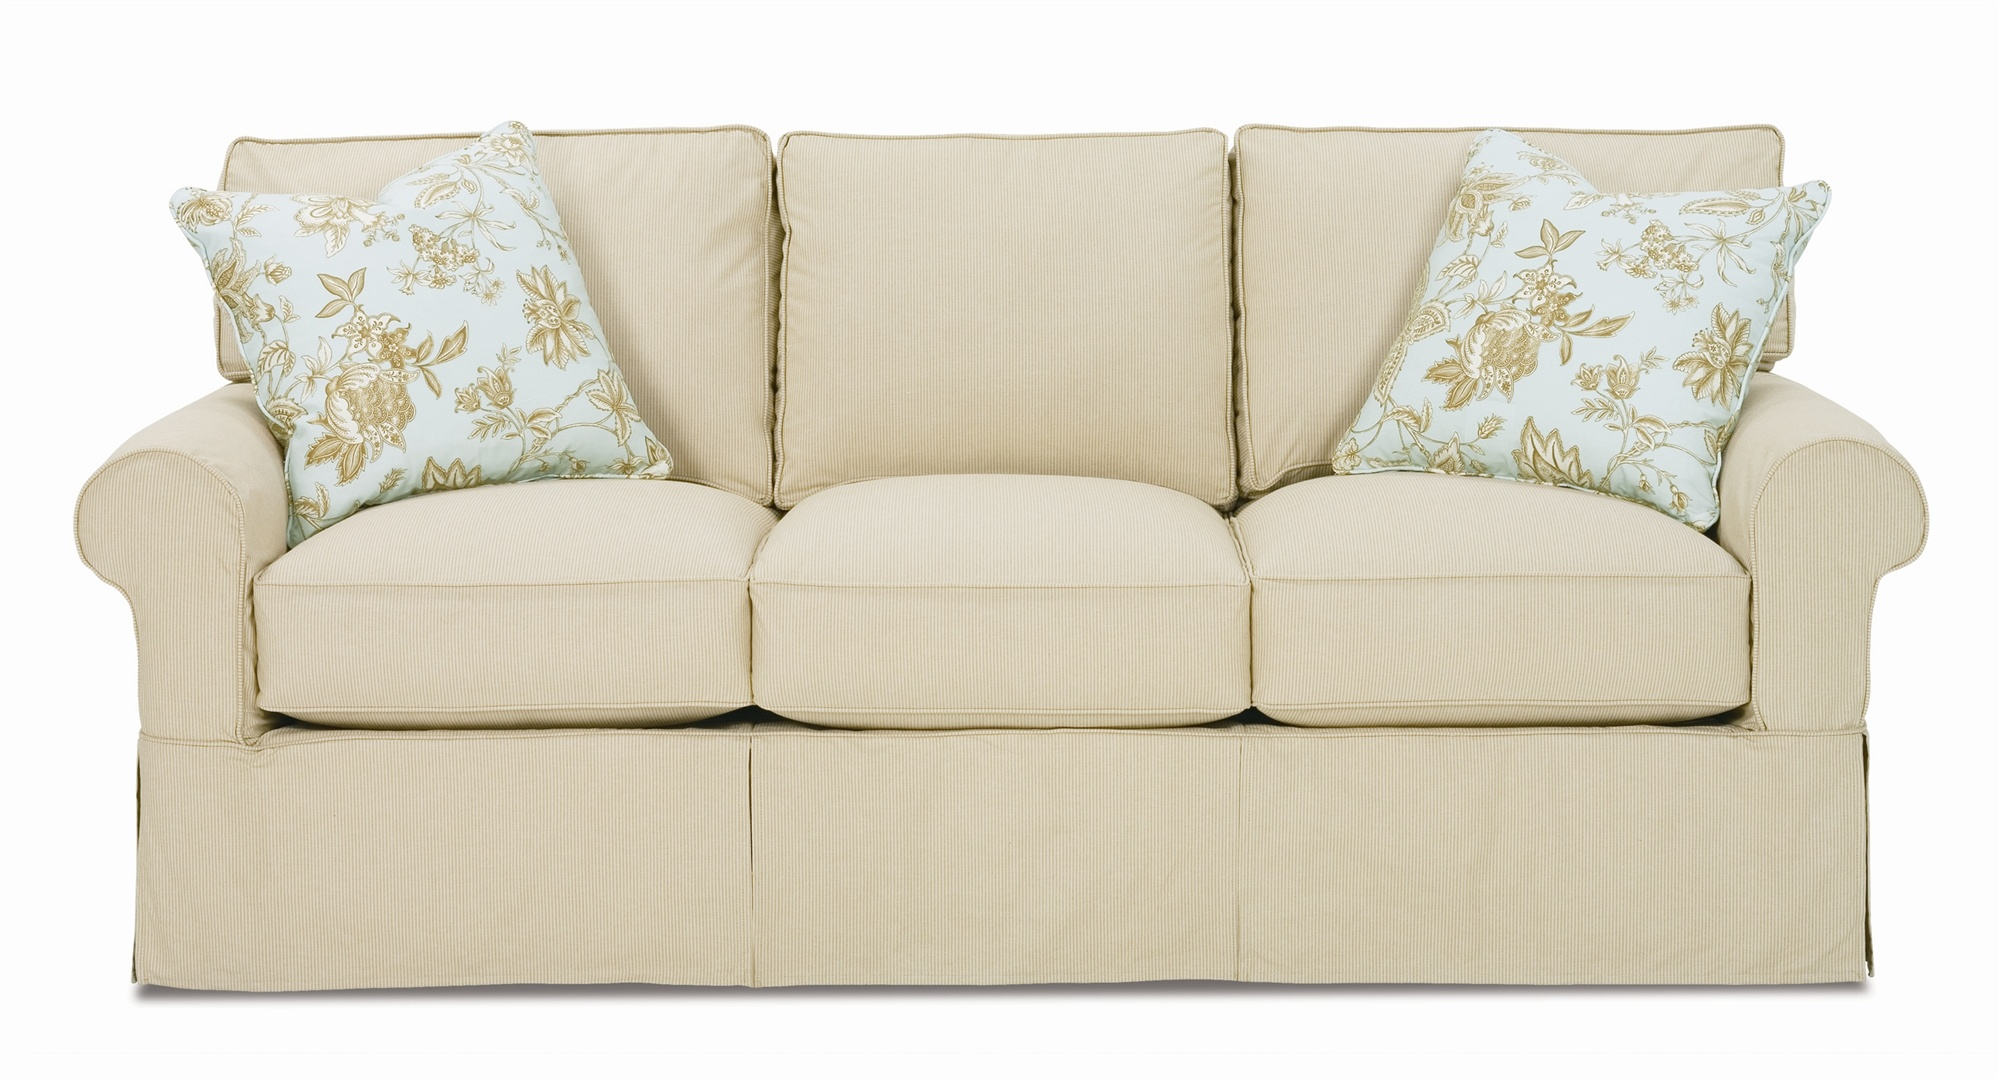 Charming Sofa Slipcover